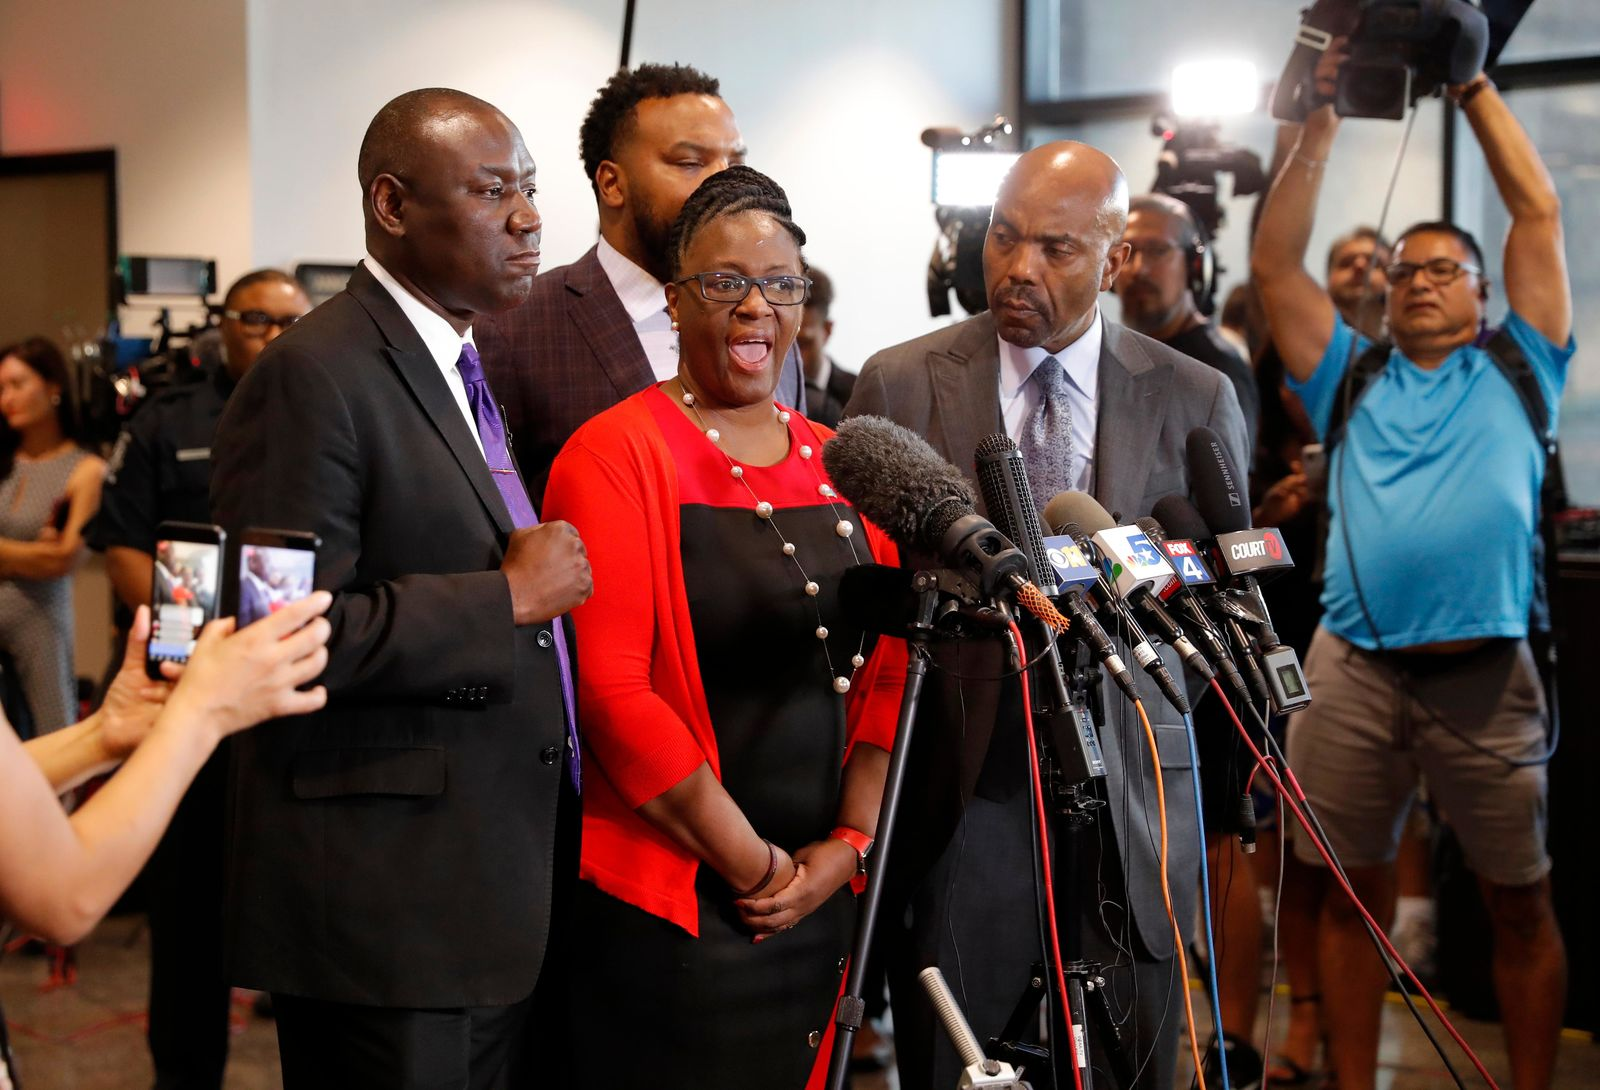 Allison Jean, center, mother of Botham Jean, makes comments during a news conference as attorneys Ben Crump, left, Lee Merritt, rear, and Daryl Washington, right, look on after the sentencing phase of former Dallas police officer Amber Guyger murder trial at Frank Crowley Court Building in Dallas, Wednesday, Oct. 2, 2019. (AP Photo/Tony Gutierrez)